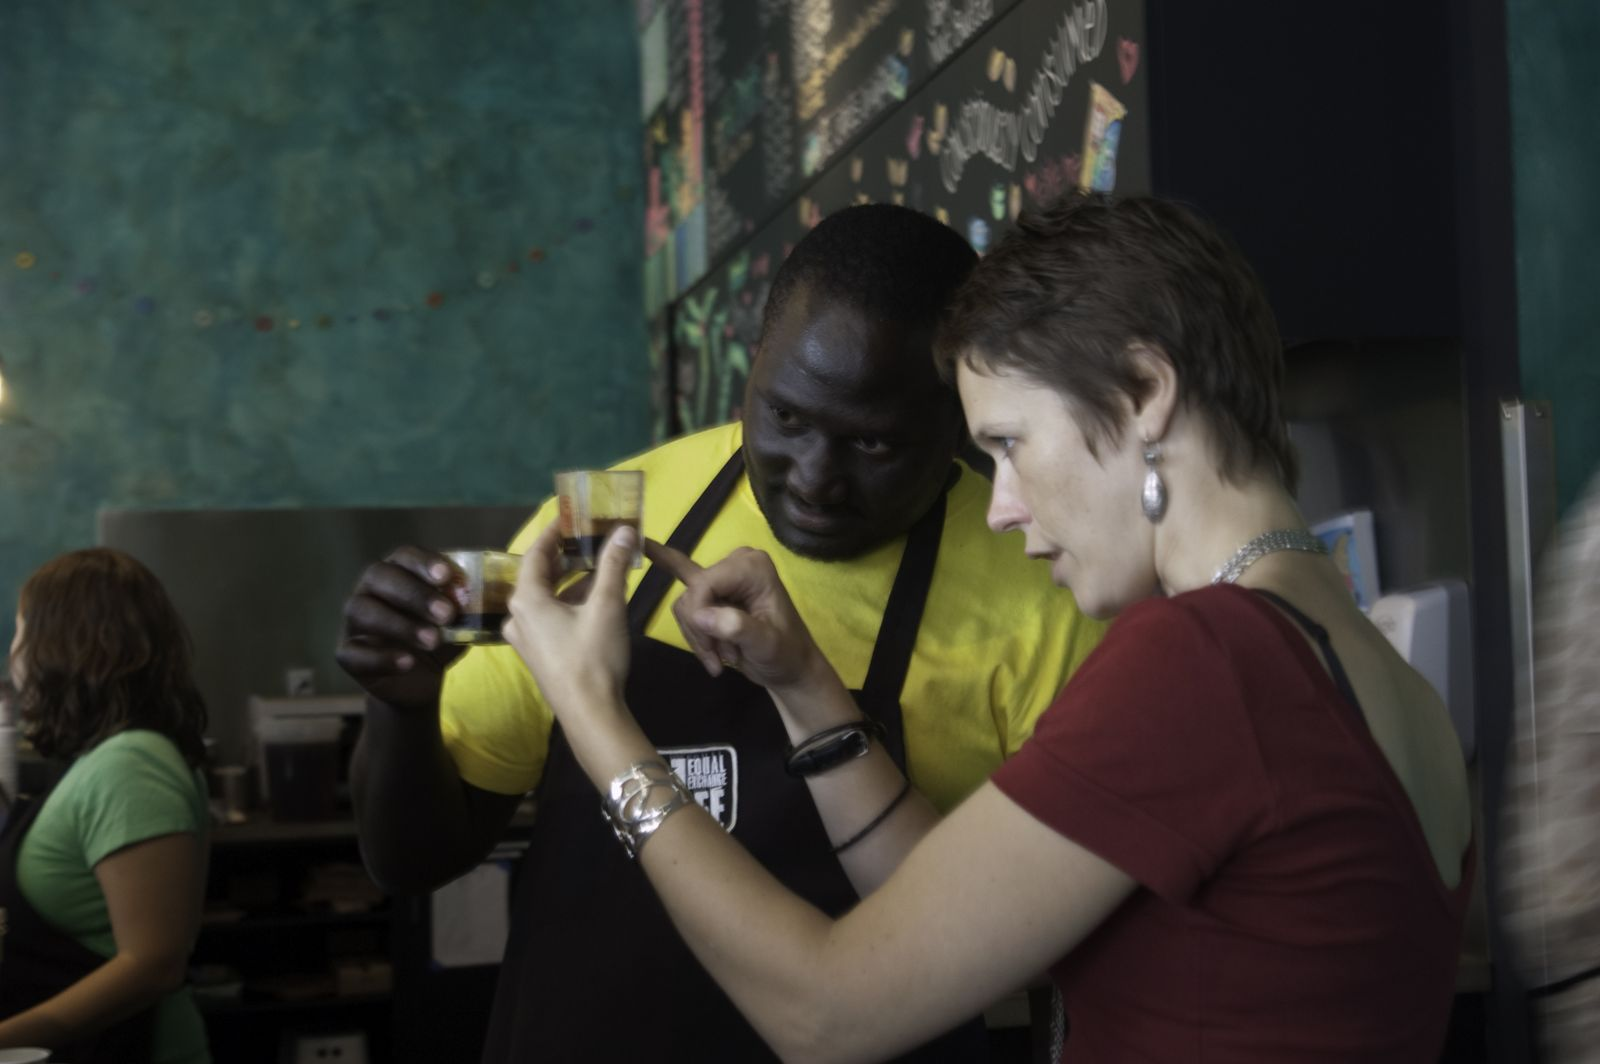 Amen Mtui, a cupper from KNCU in Tanzania, and Beth Ann Caspersen, Equal Exchange Quality Control Manager, at the Equal Exchange Cafe in Boston, Mass.